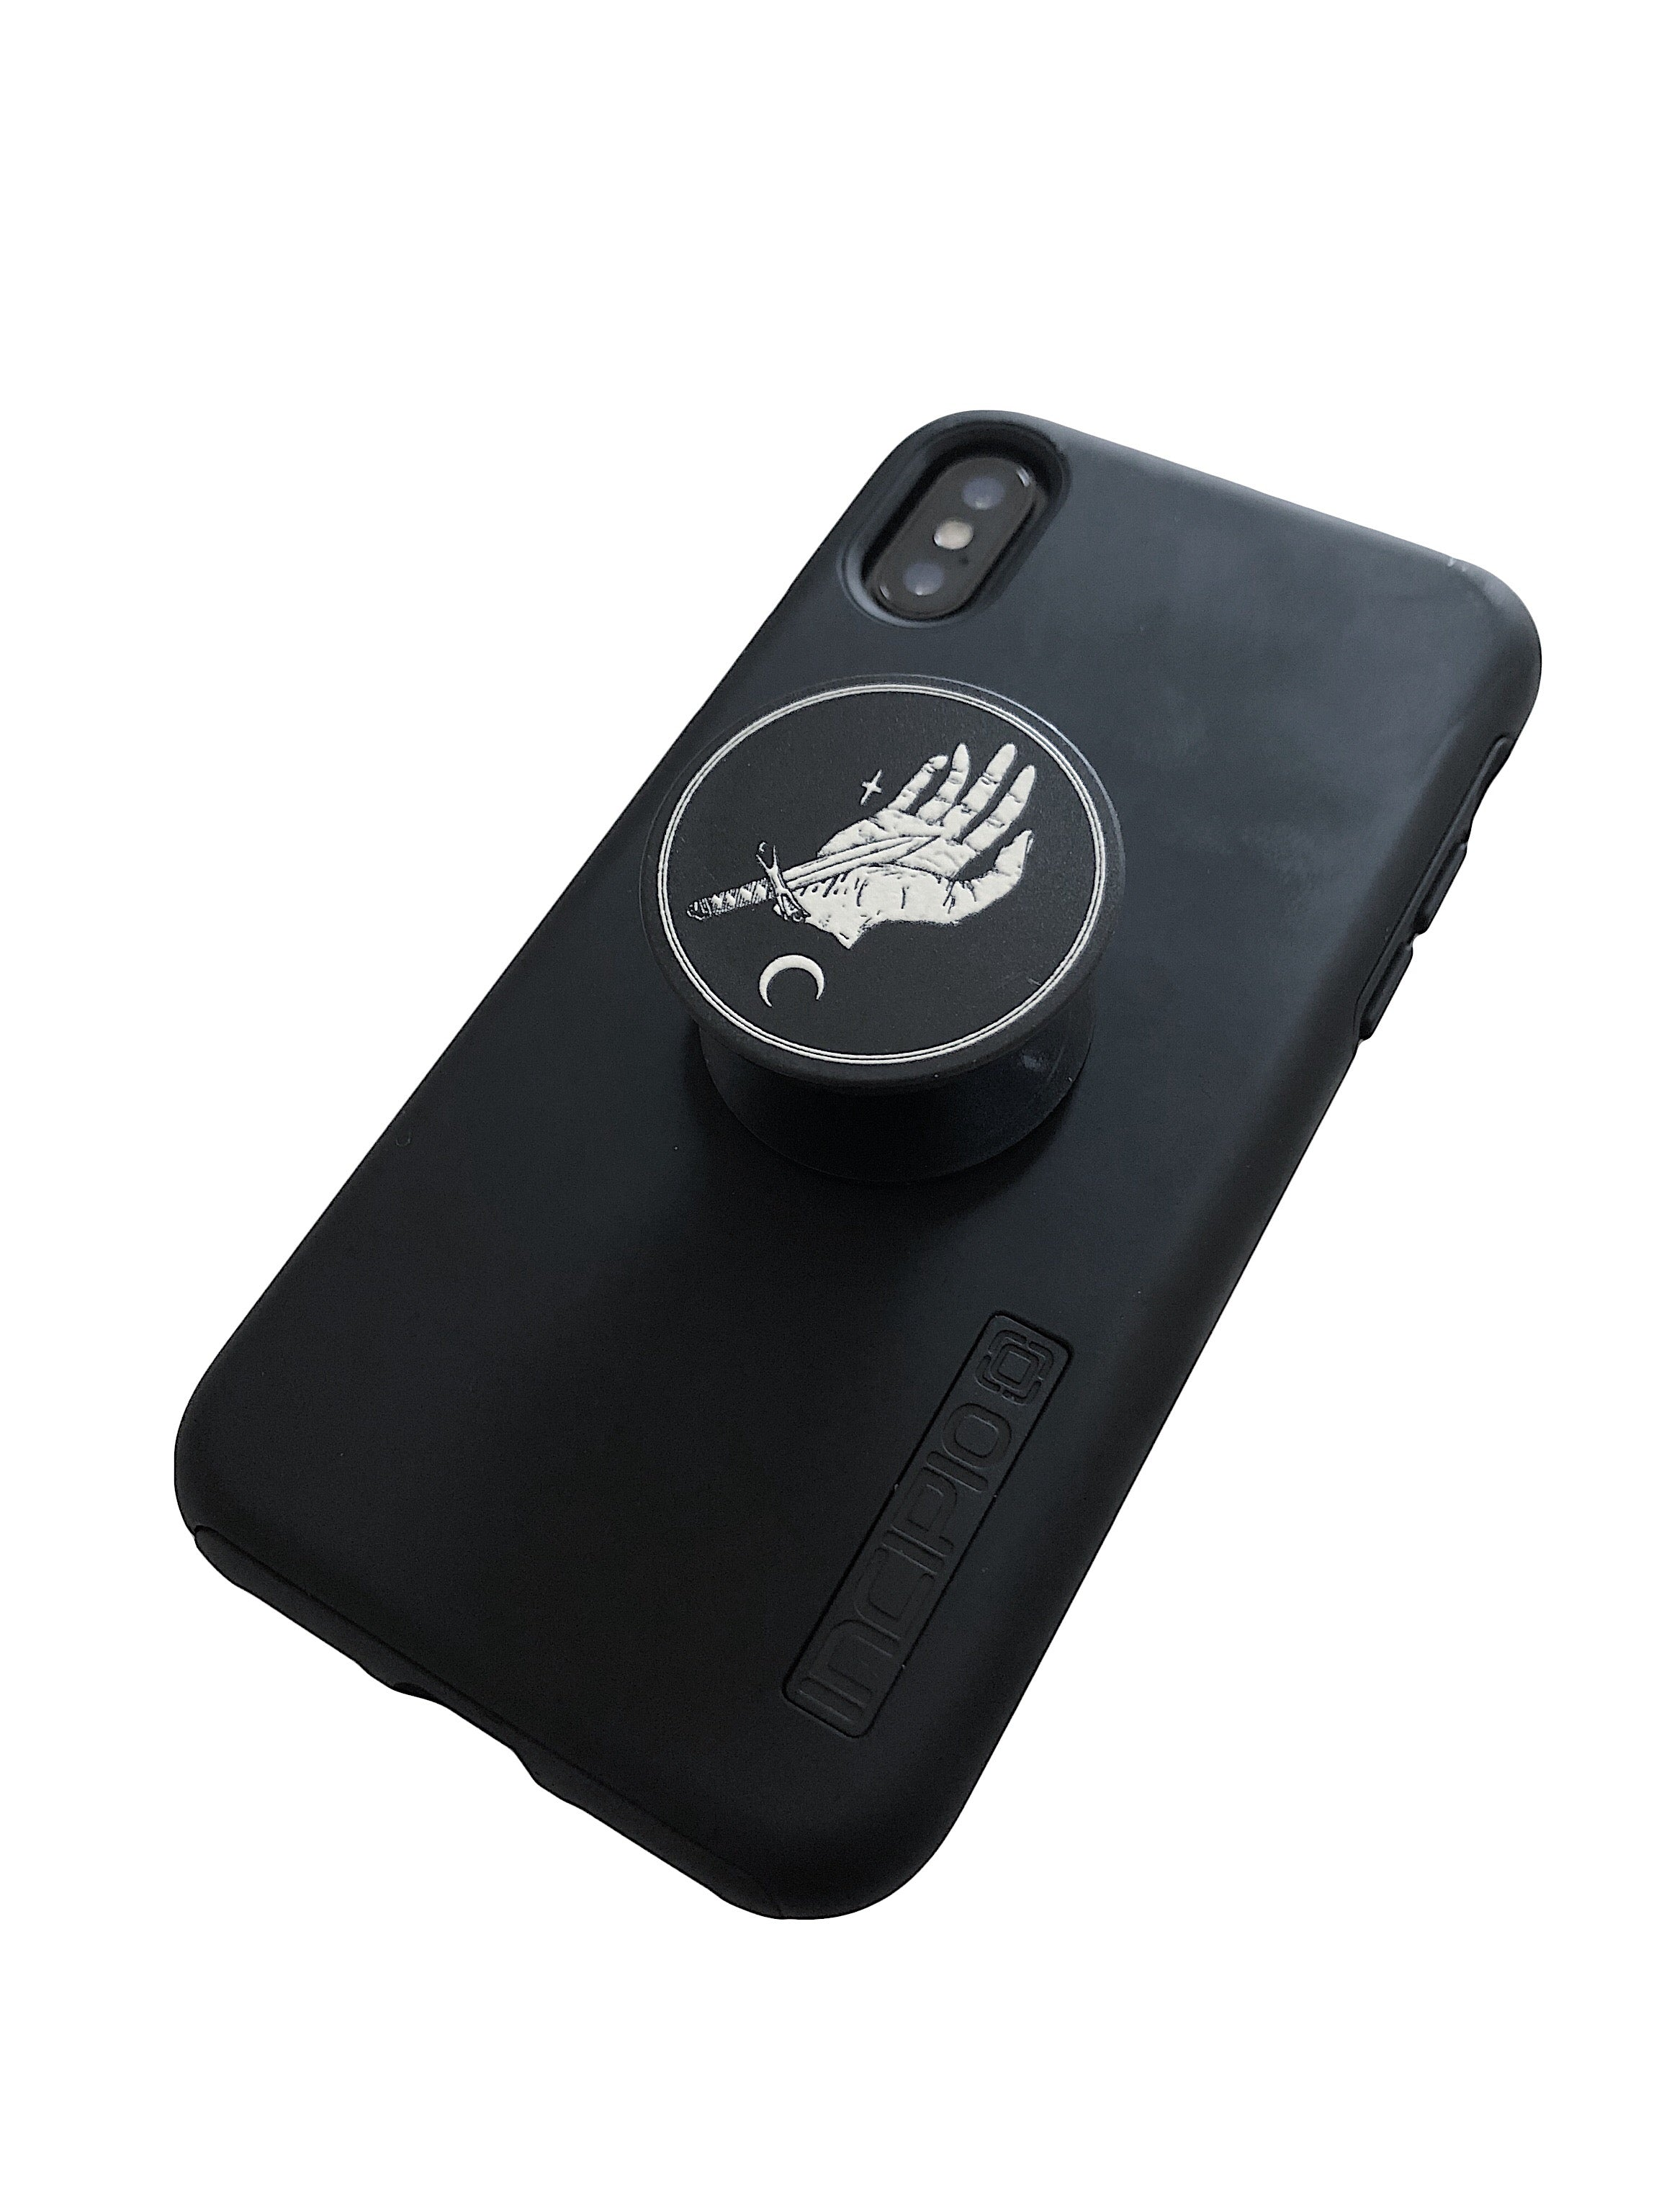 Join The Cult Pop Socket